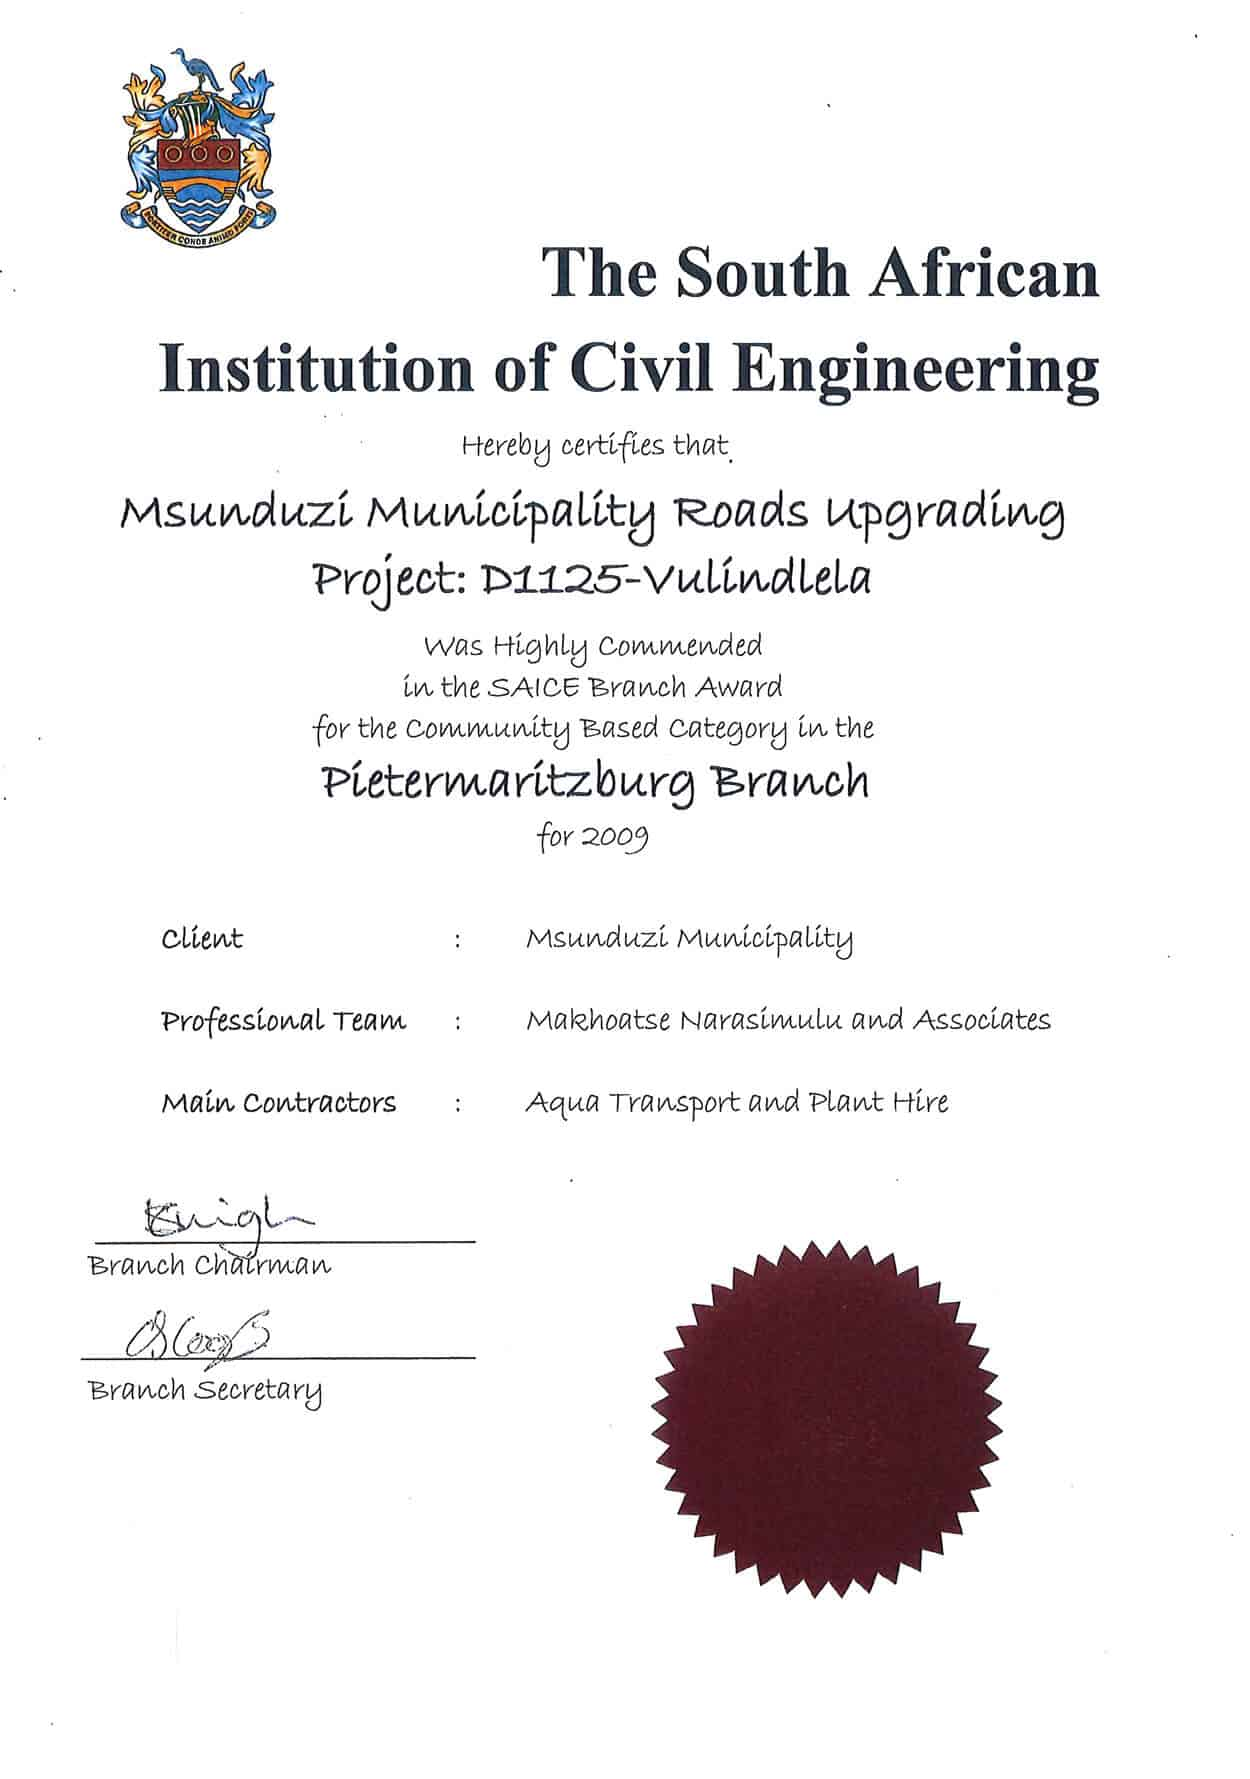 The South African Institute of Civil Engineering Maunduzi Municipality Roads Upgrading